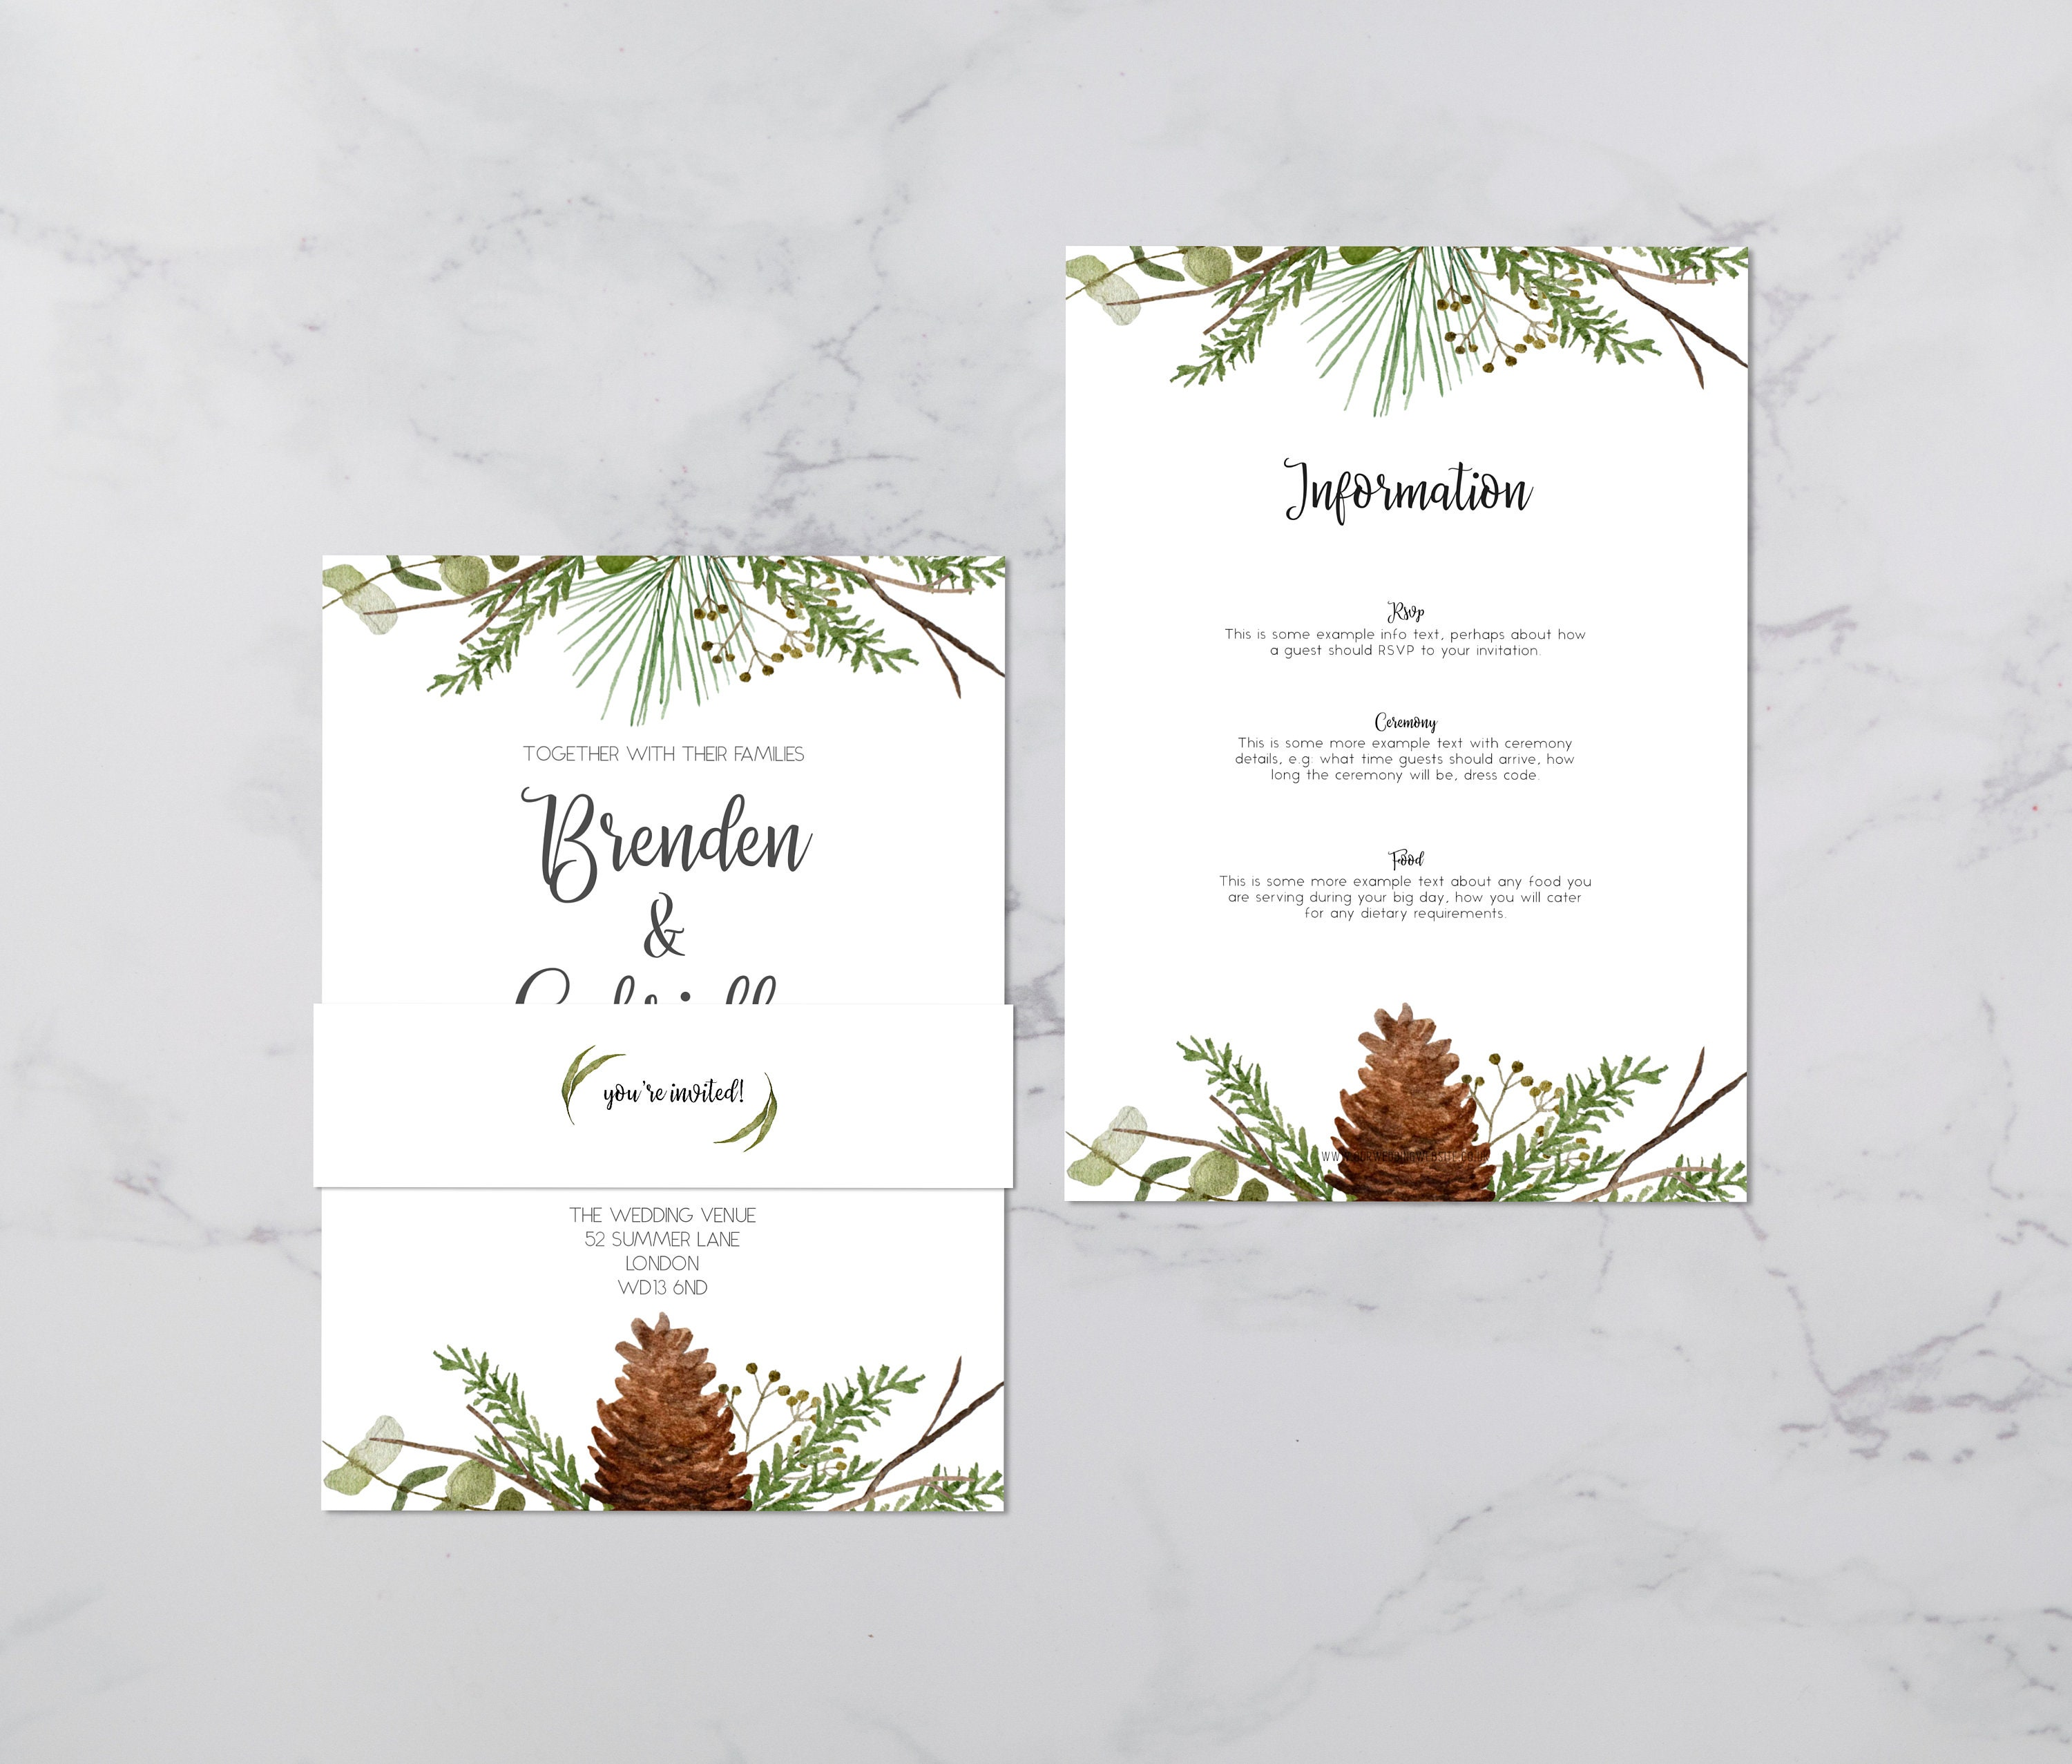 Flat lay photograph of a wedding invitation and information card. The wedding invitation is overlaid with a vellum sheet and wrapped in a belly band. Each card is white, featuring winter foliage illustrations